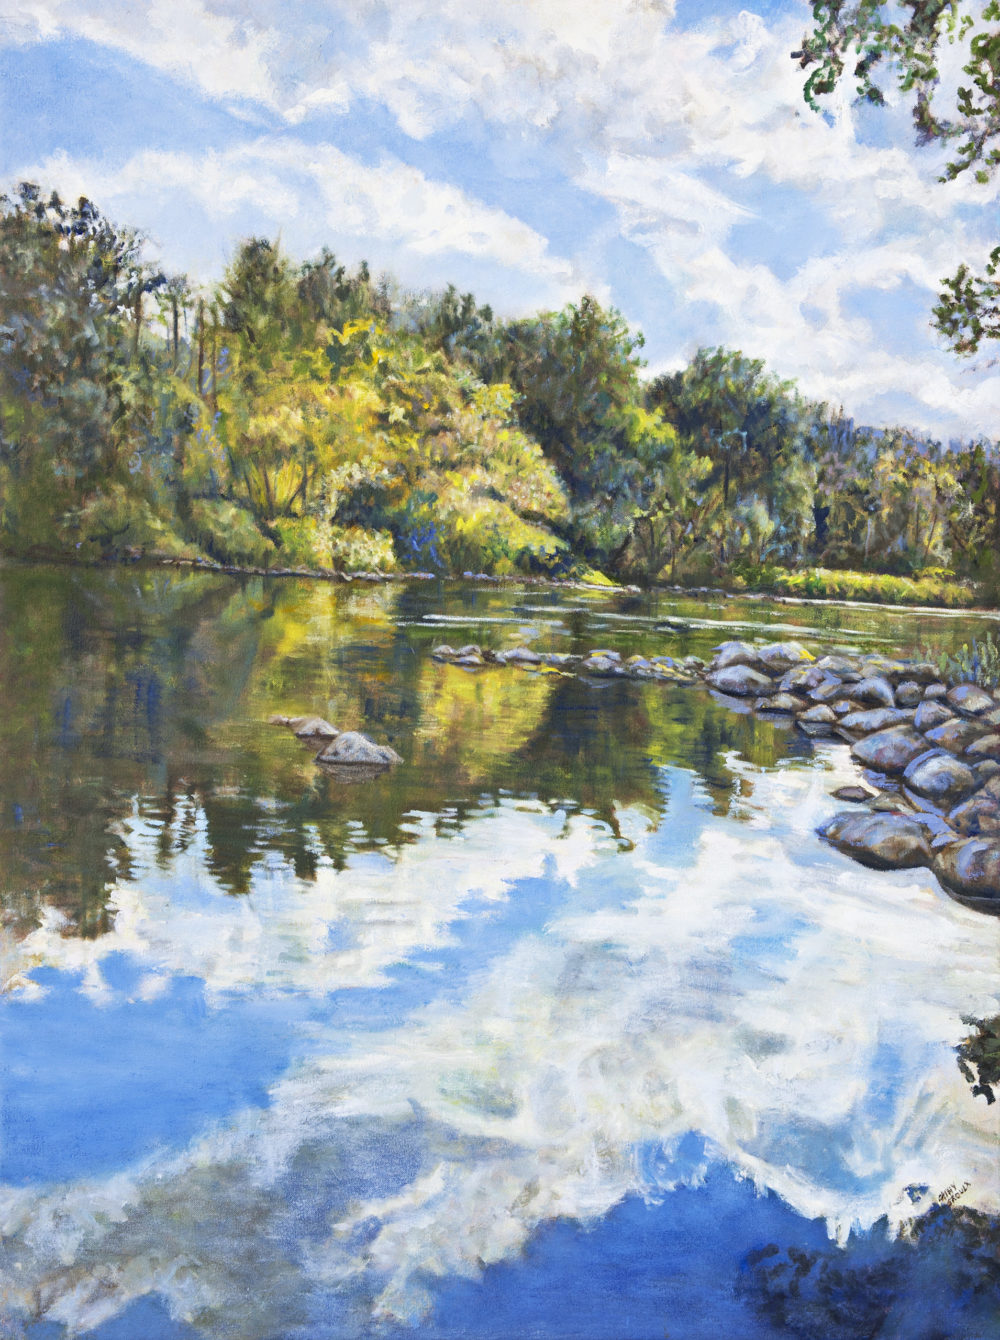 Clouds Reflected - Cathy Groulx